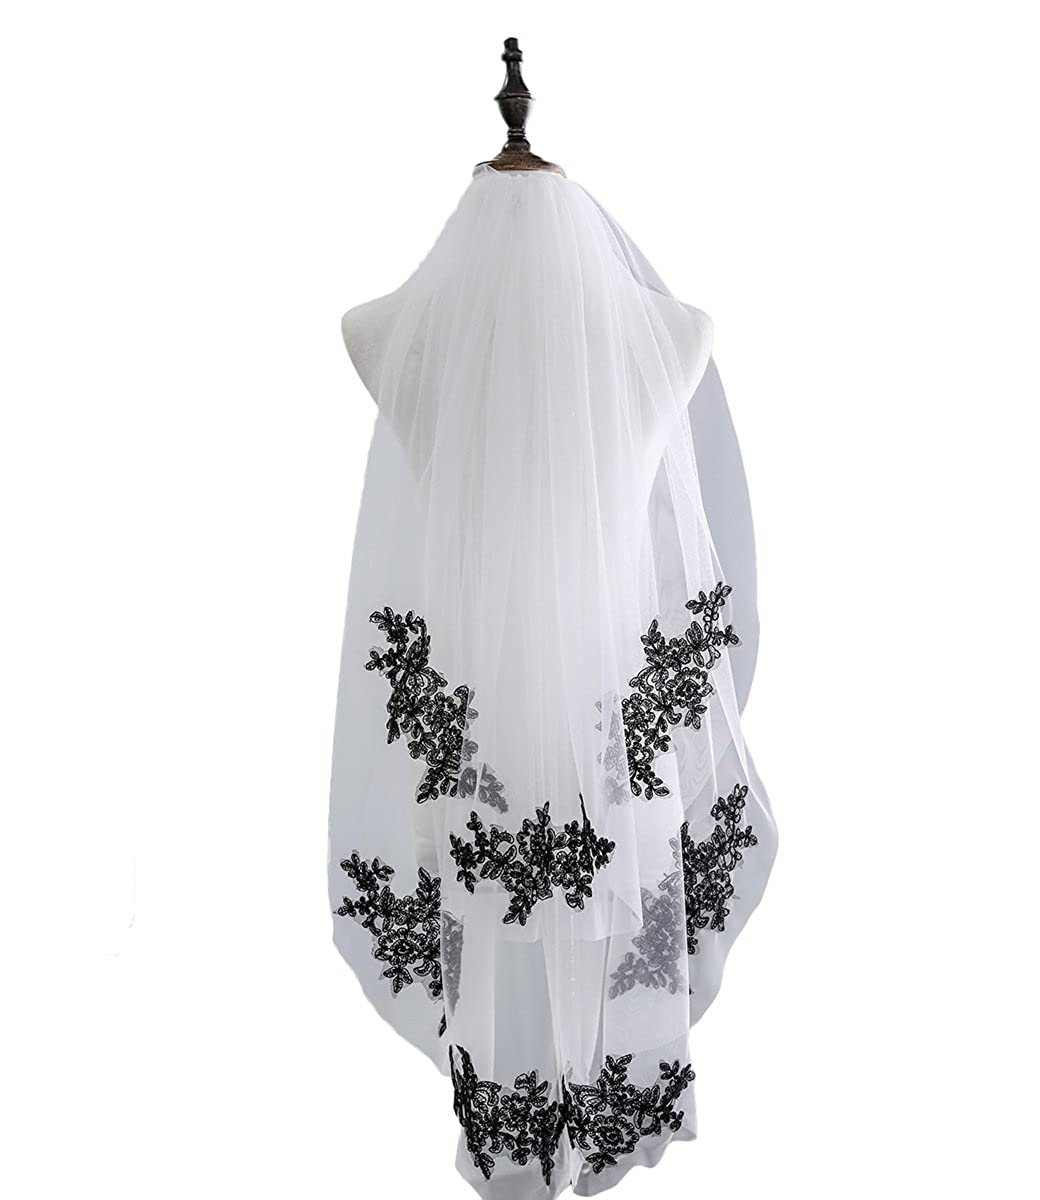 Veilbridal Soft Tulle Black and White Lace Applique Mantilla Veils Bridal Wedding Veils with Comb 2 Tiers